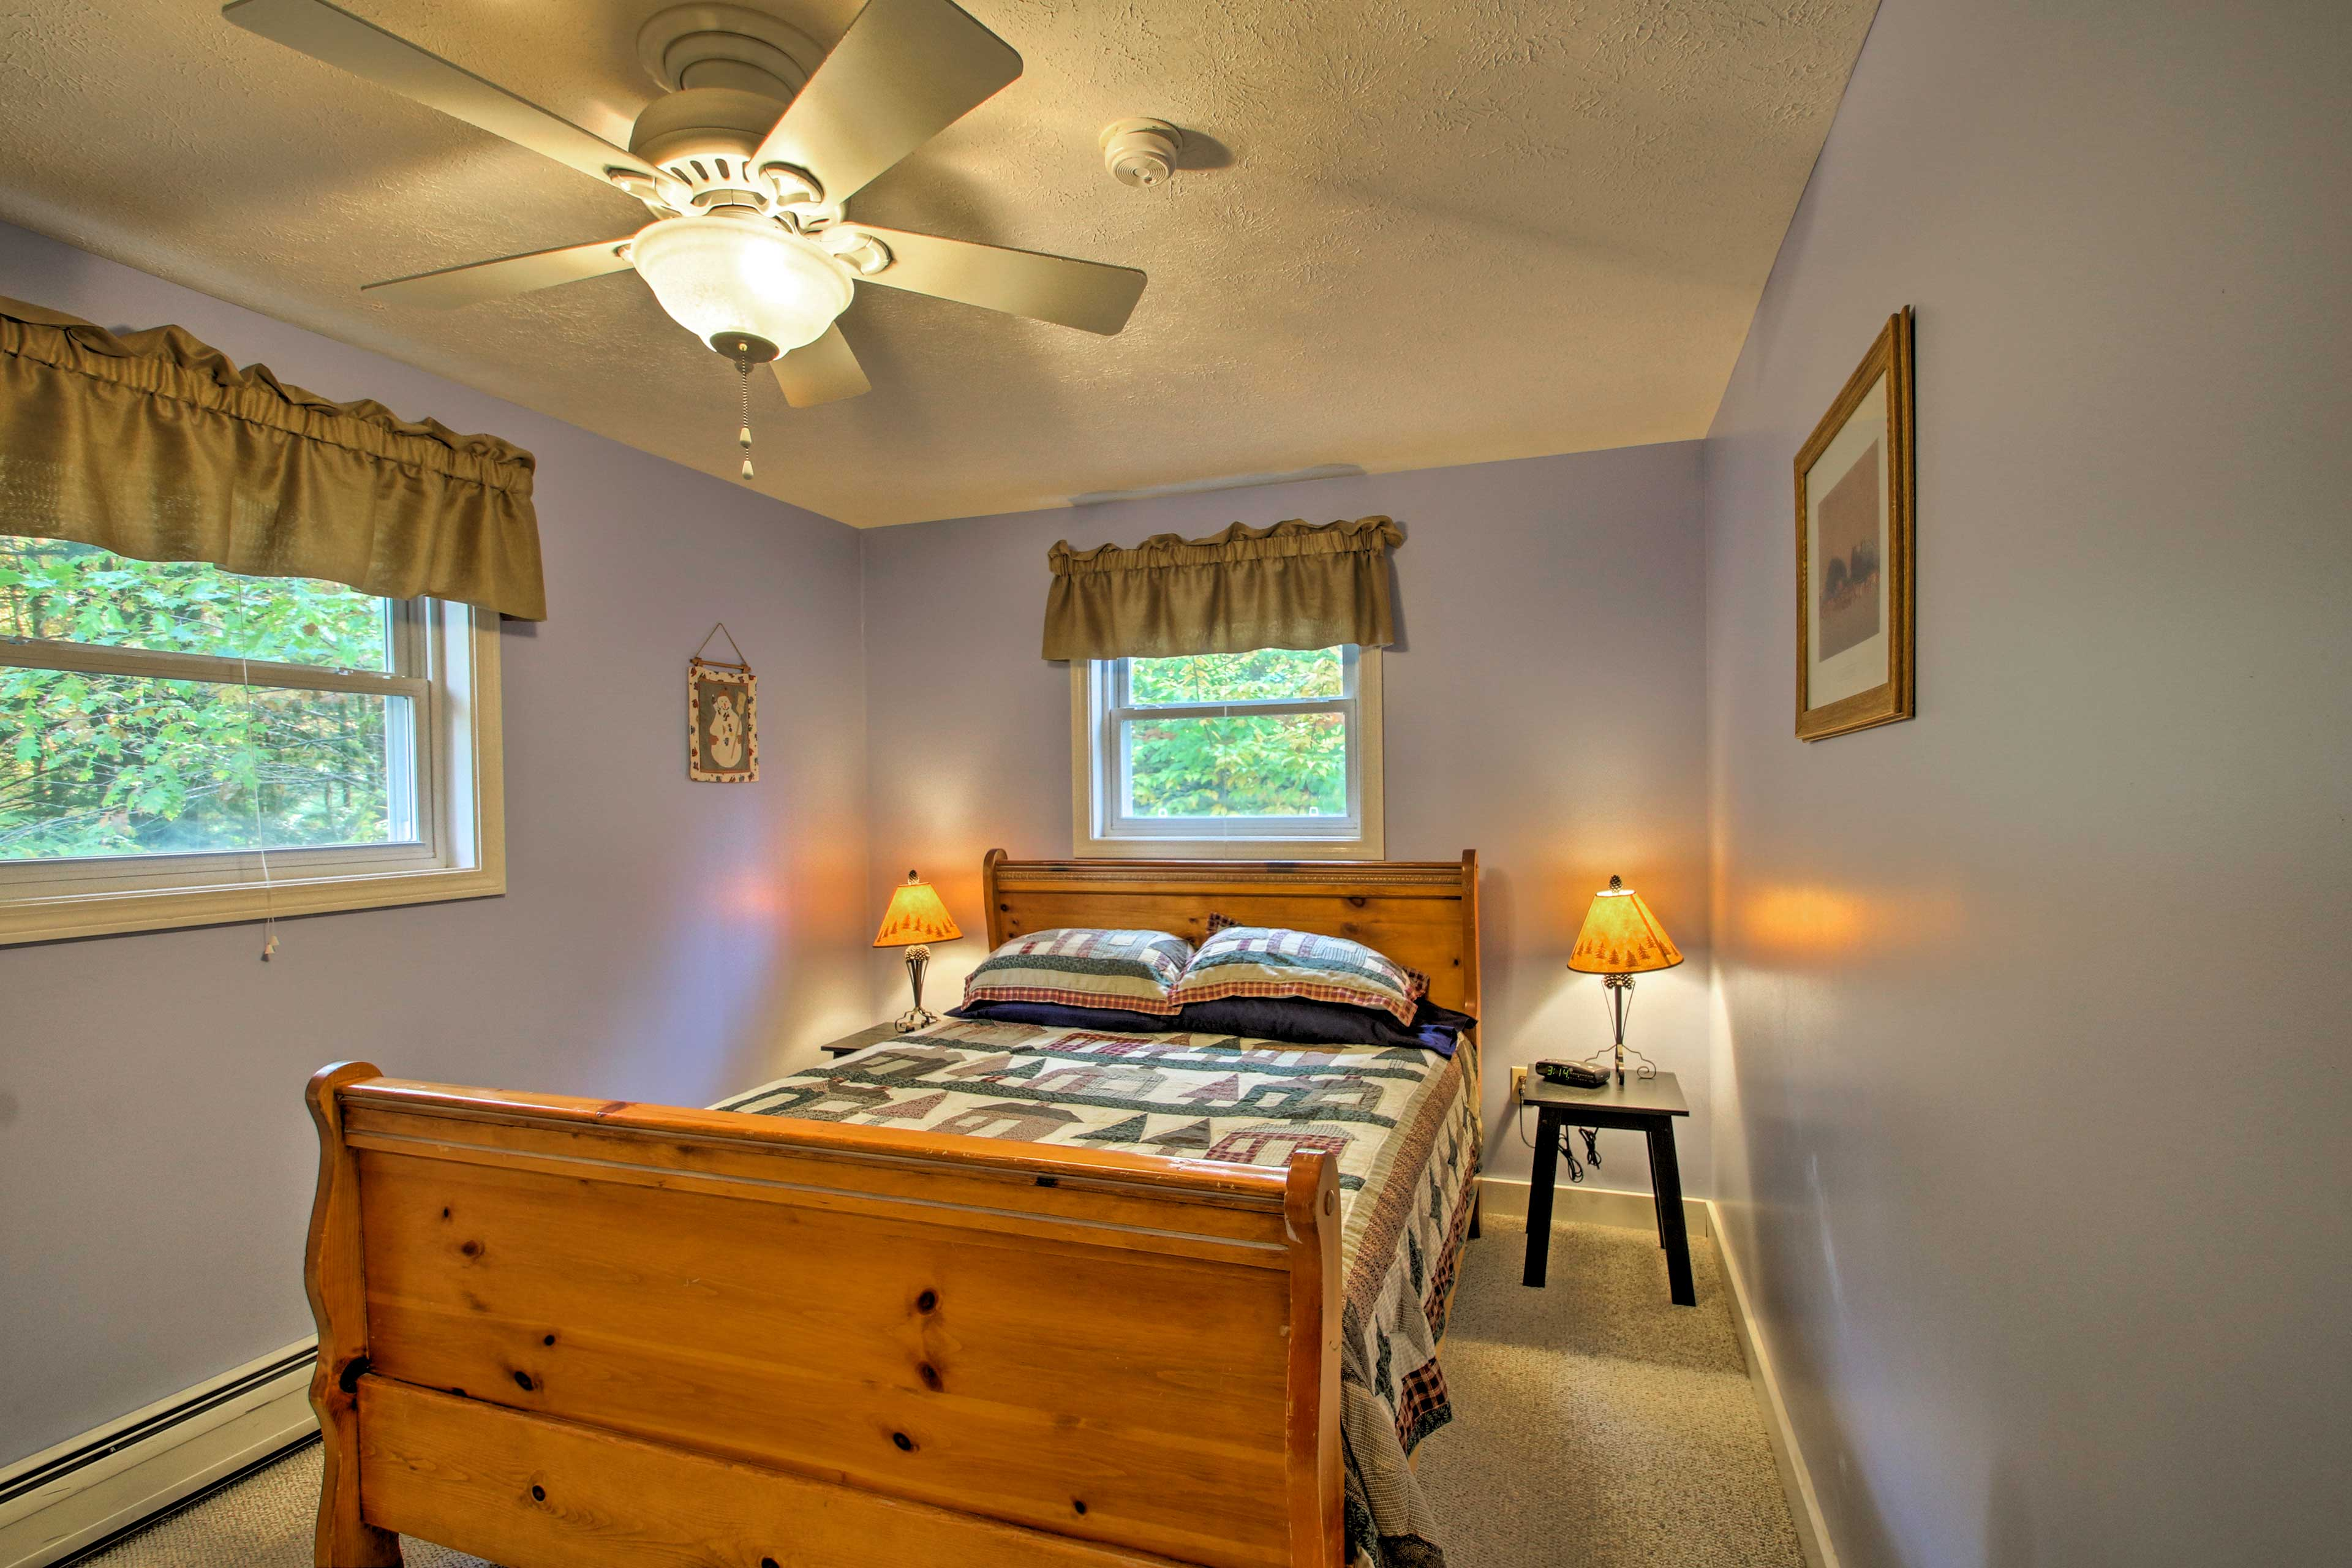 Most of the bedrooms feature queen beds for 2.